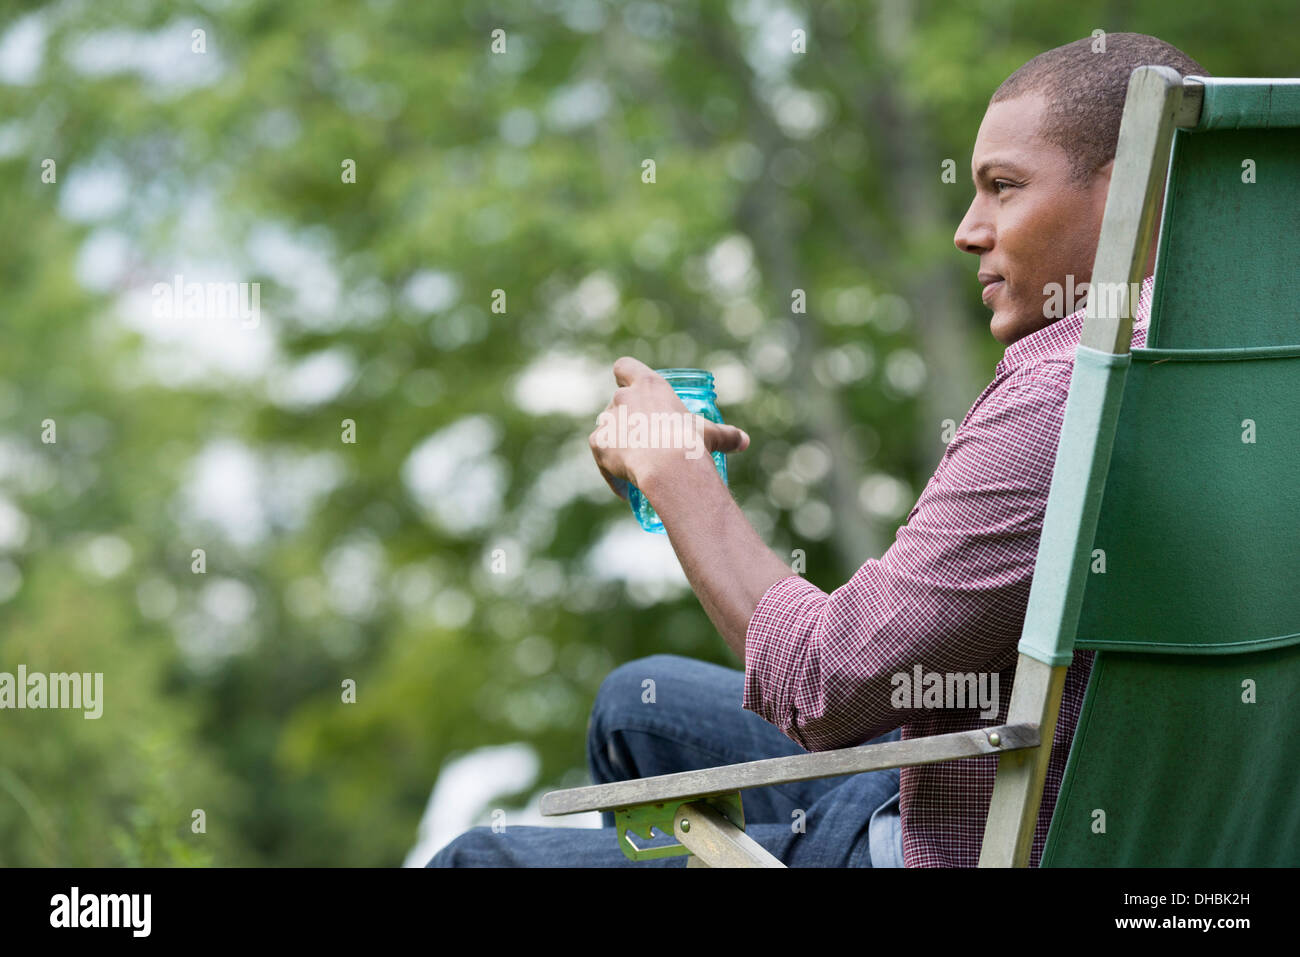 A man seated in a chair in a garden, relaxing. - Stock Image